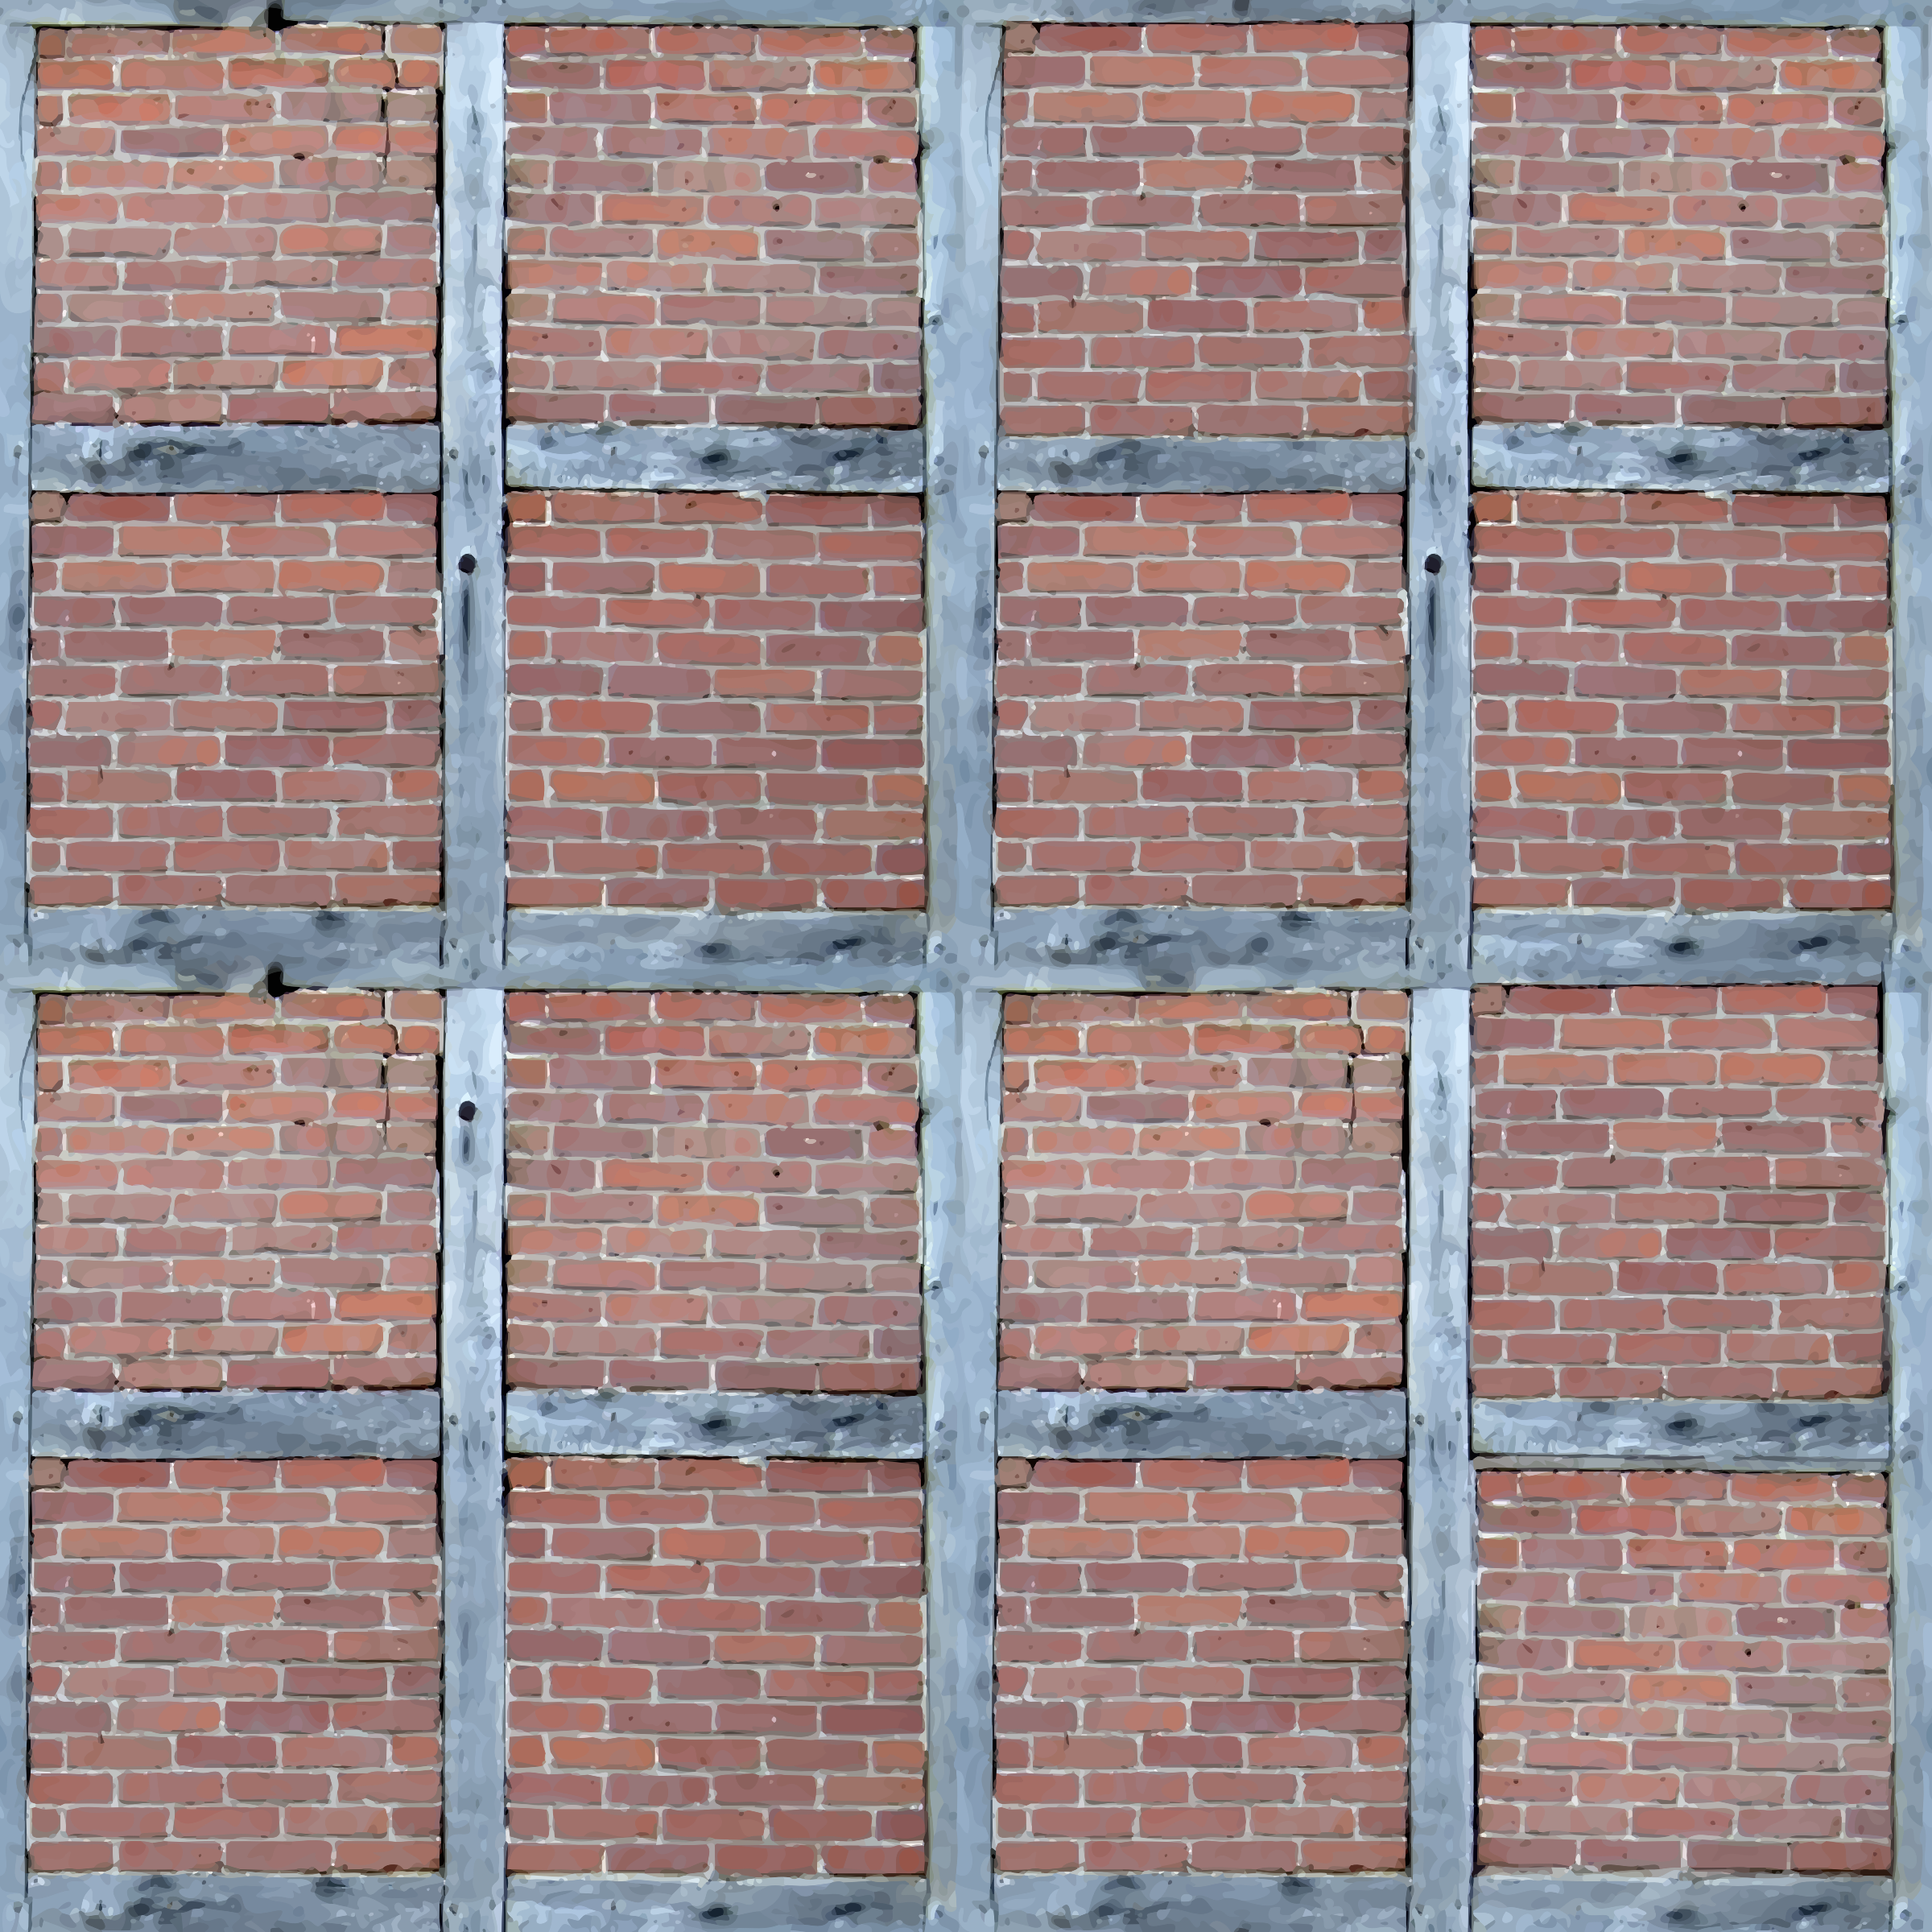 Brick wall 4 by Firkin